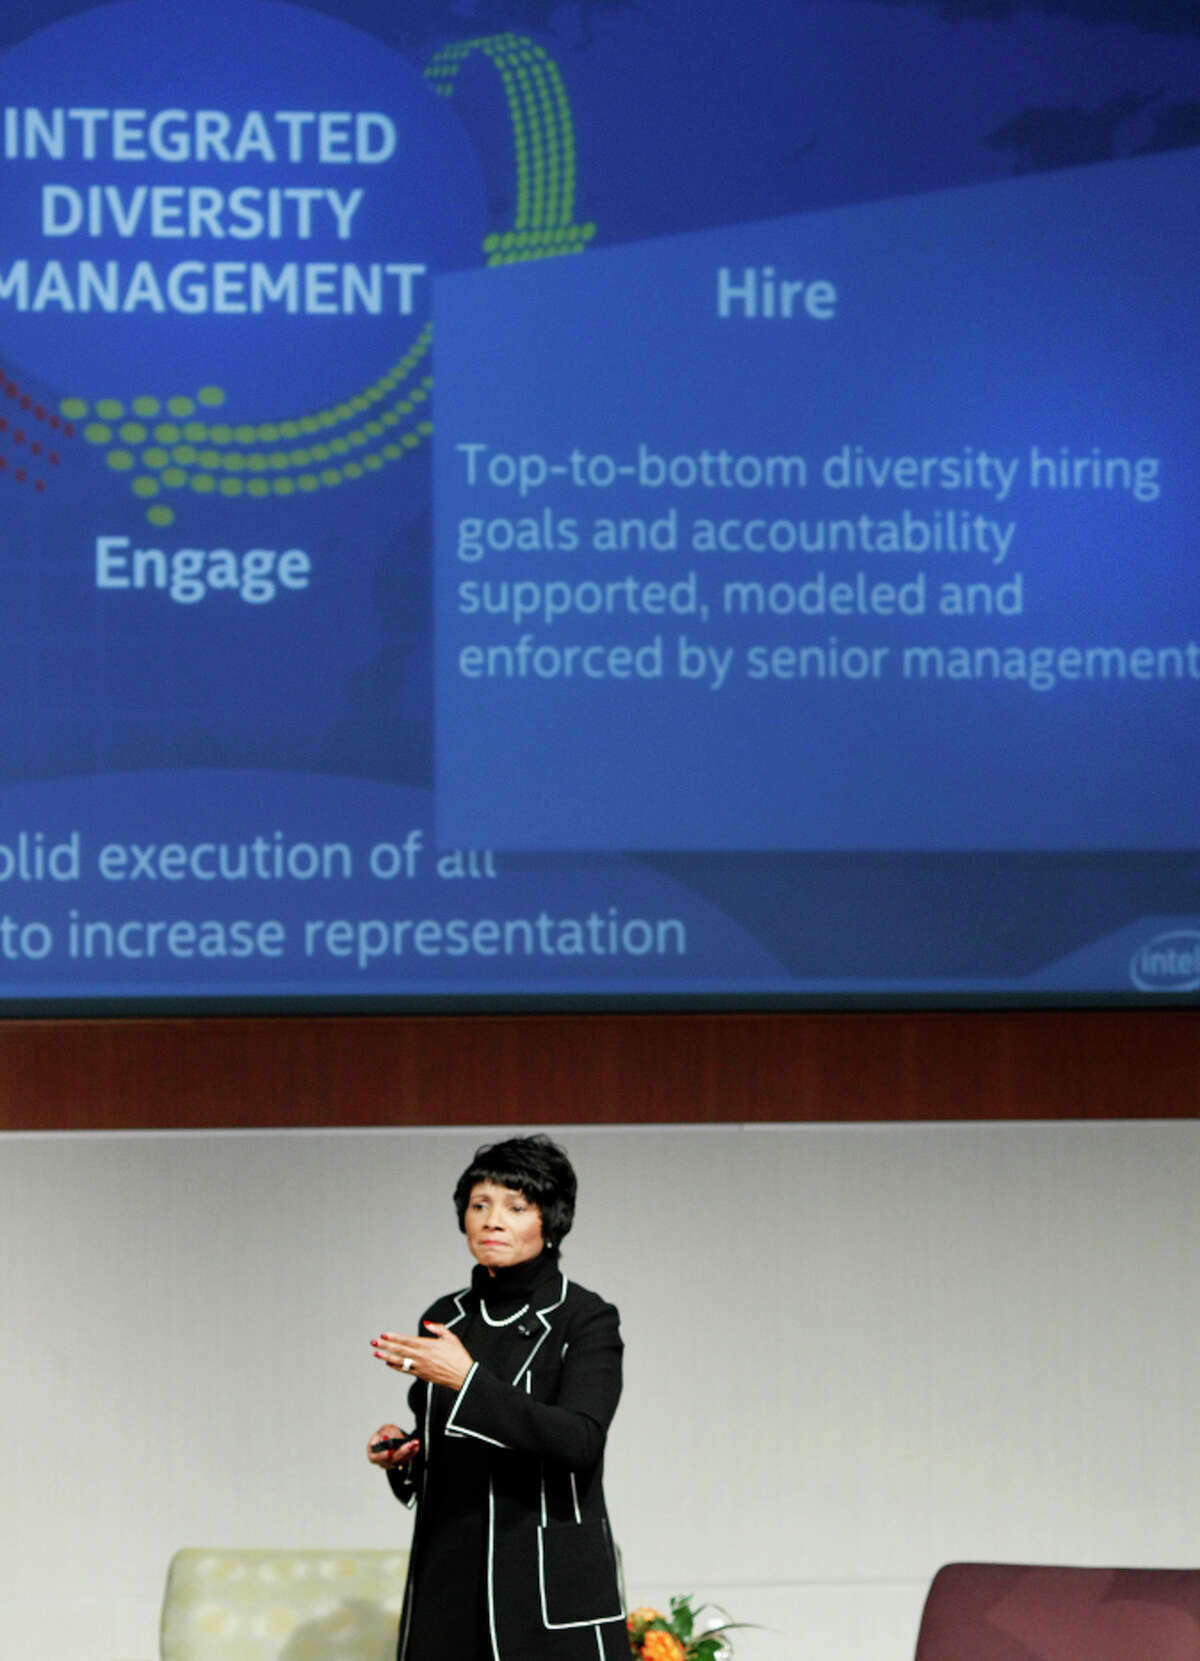 Rosalind Hudnell of Intel spoke about the progress in diversity at her company.